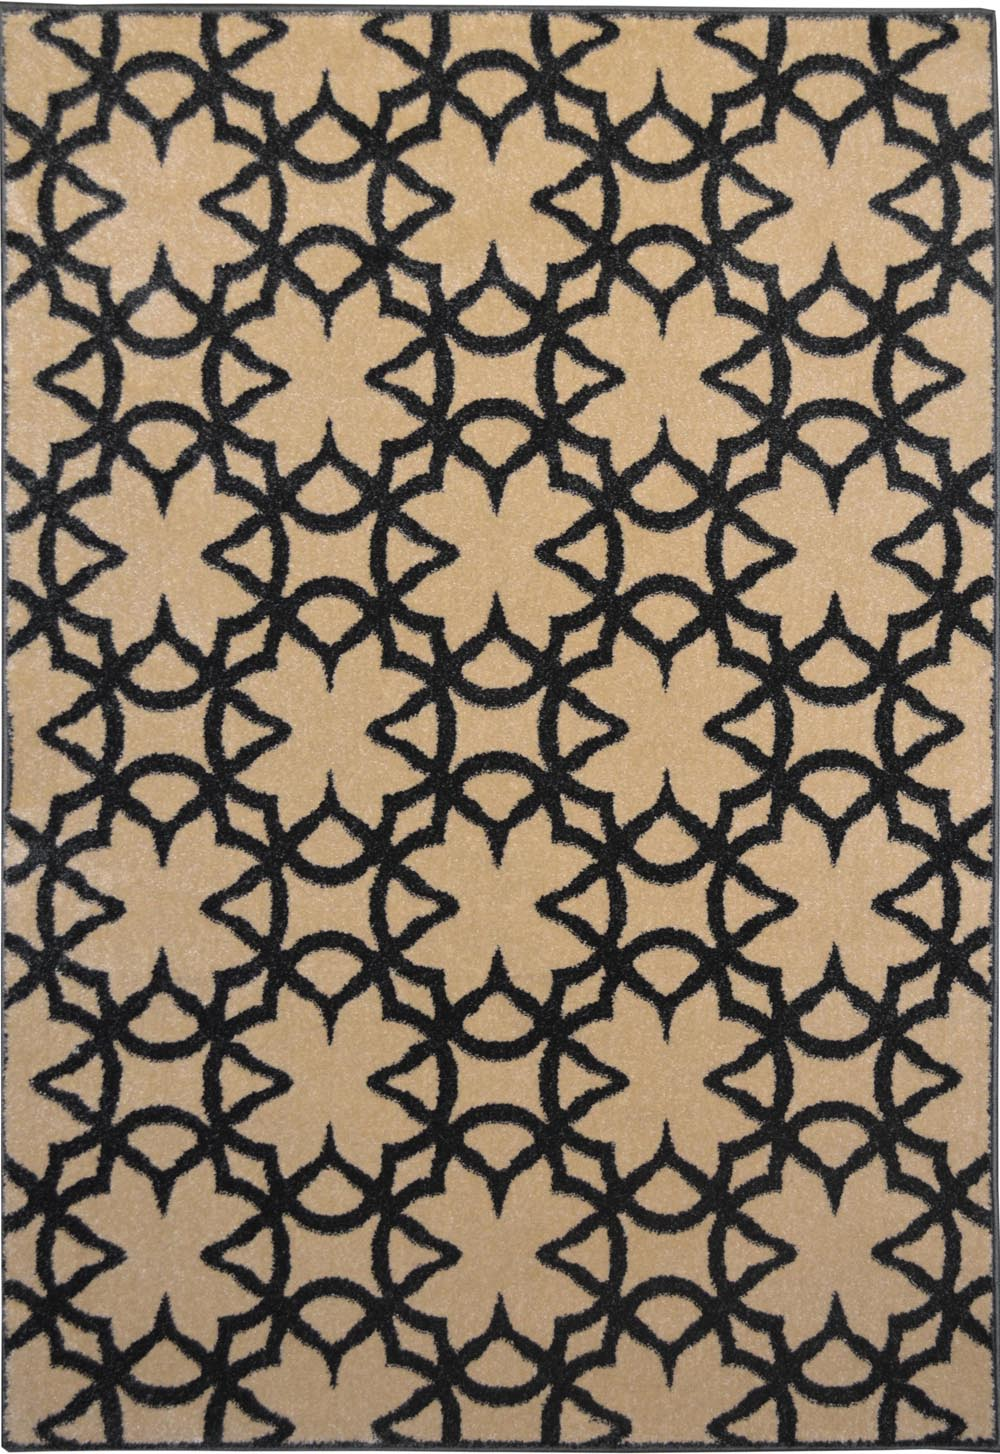 Modern geometric irongate 3x5 area rug contemporary print for Geometric print area rugs